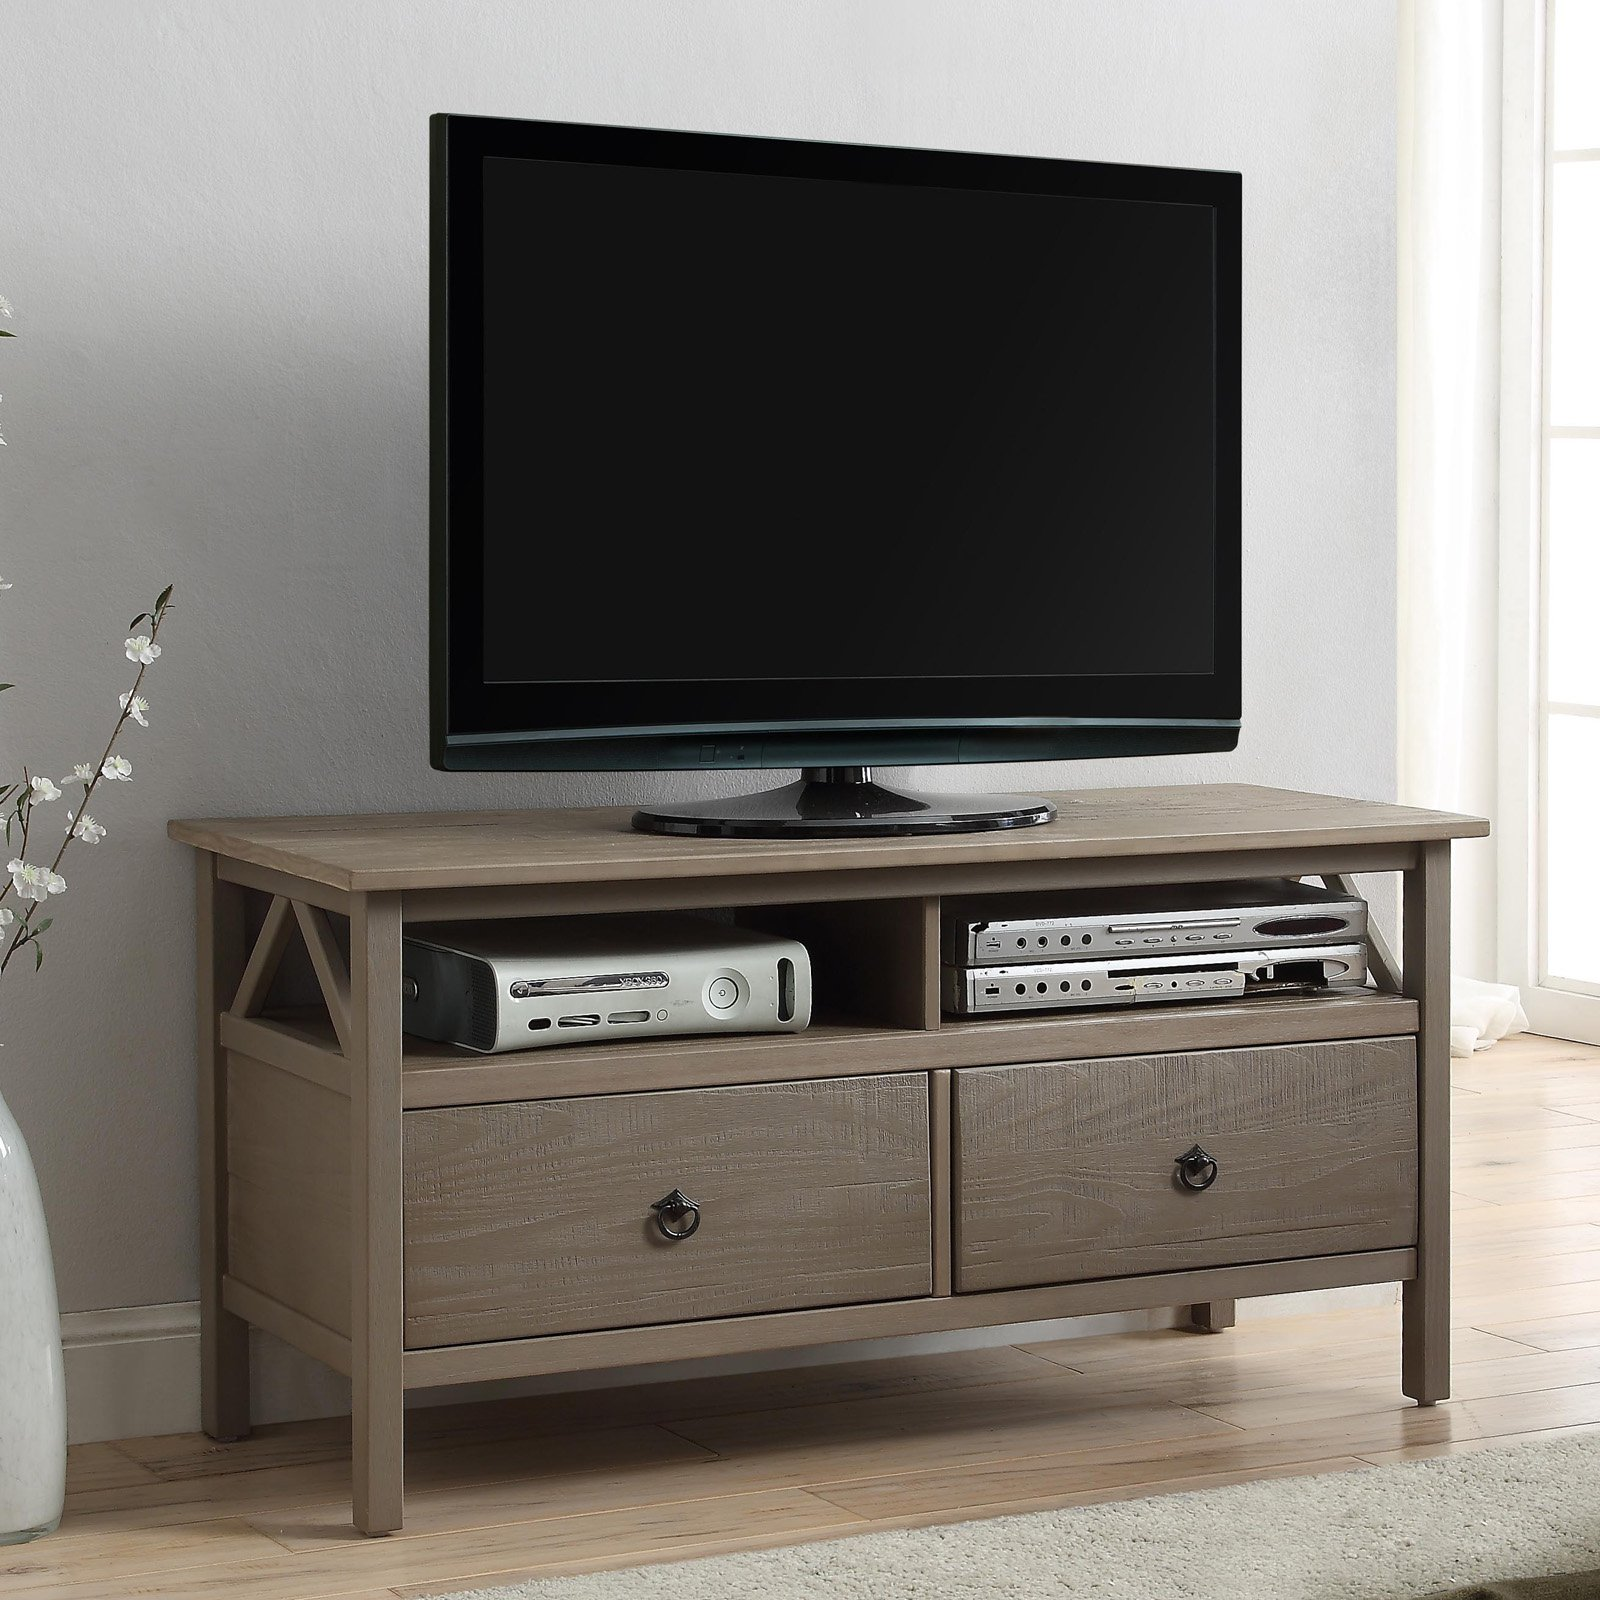 Linon Home Titian Tv Stand For Tvs Up To 40 Inches Multiple Colors